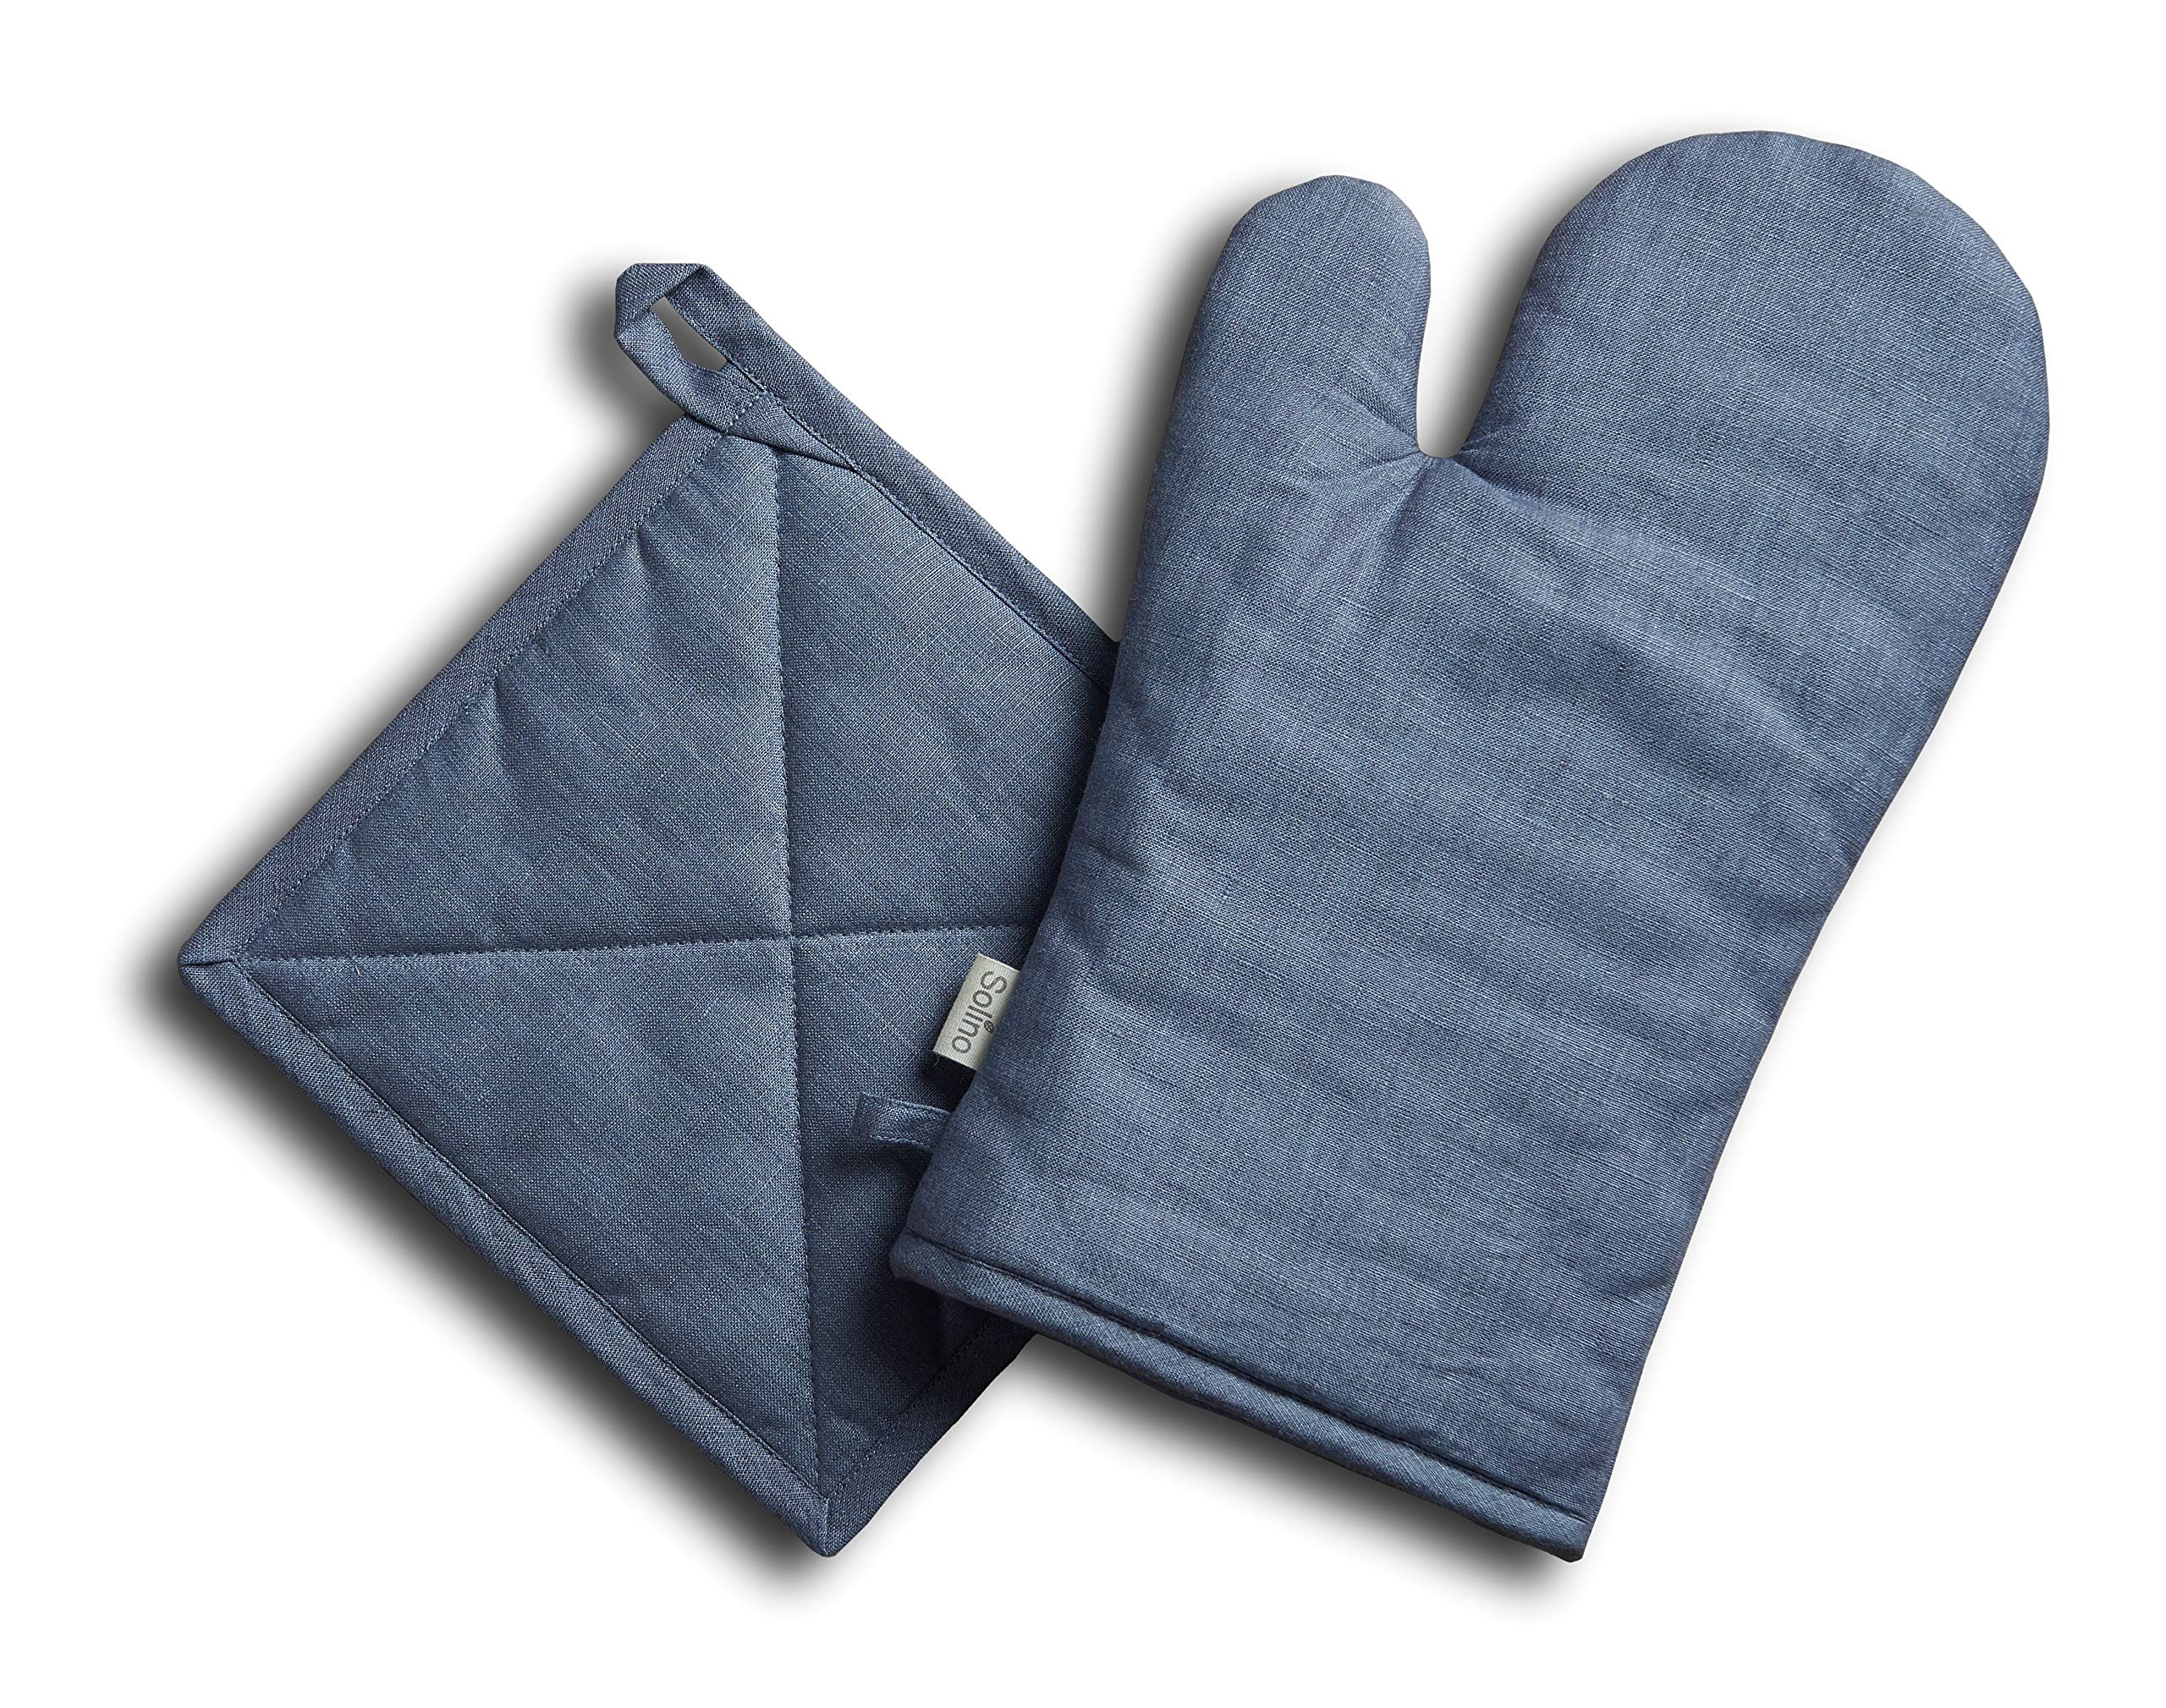 Solino Home Pure Linen Oven Mitt and Pot Holder Set - Grey, Oven Mitt (6.5 Inch x 12.5 Inch) and Pot Holder (8 Inch x 8 Inch) by Solino Home